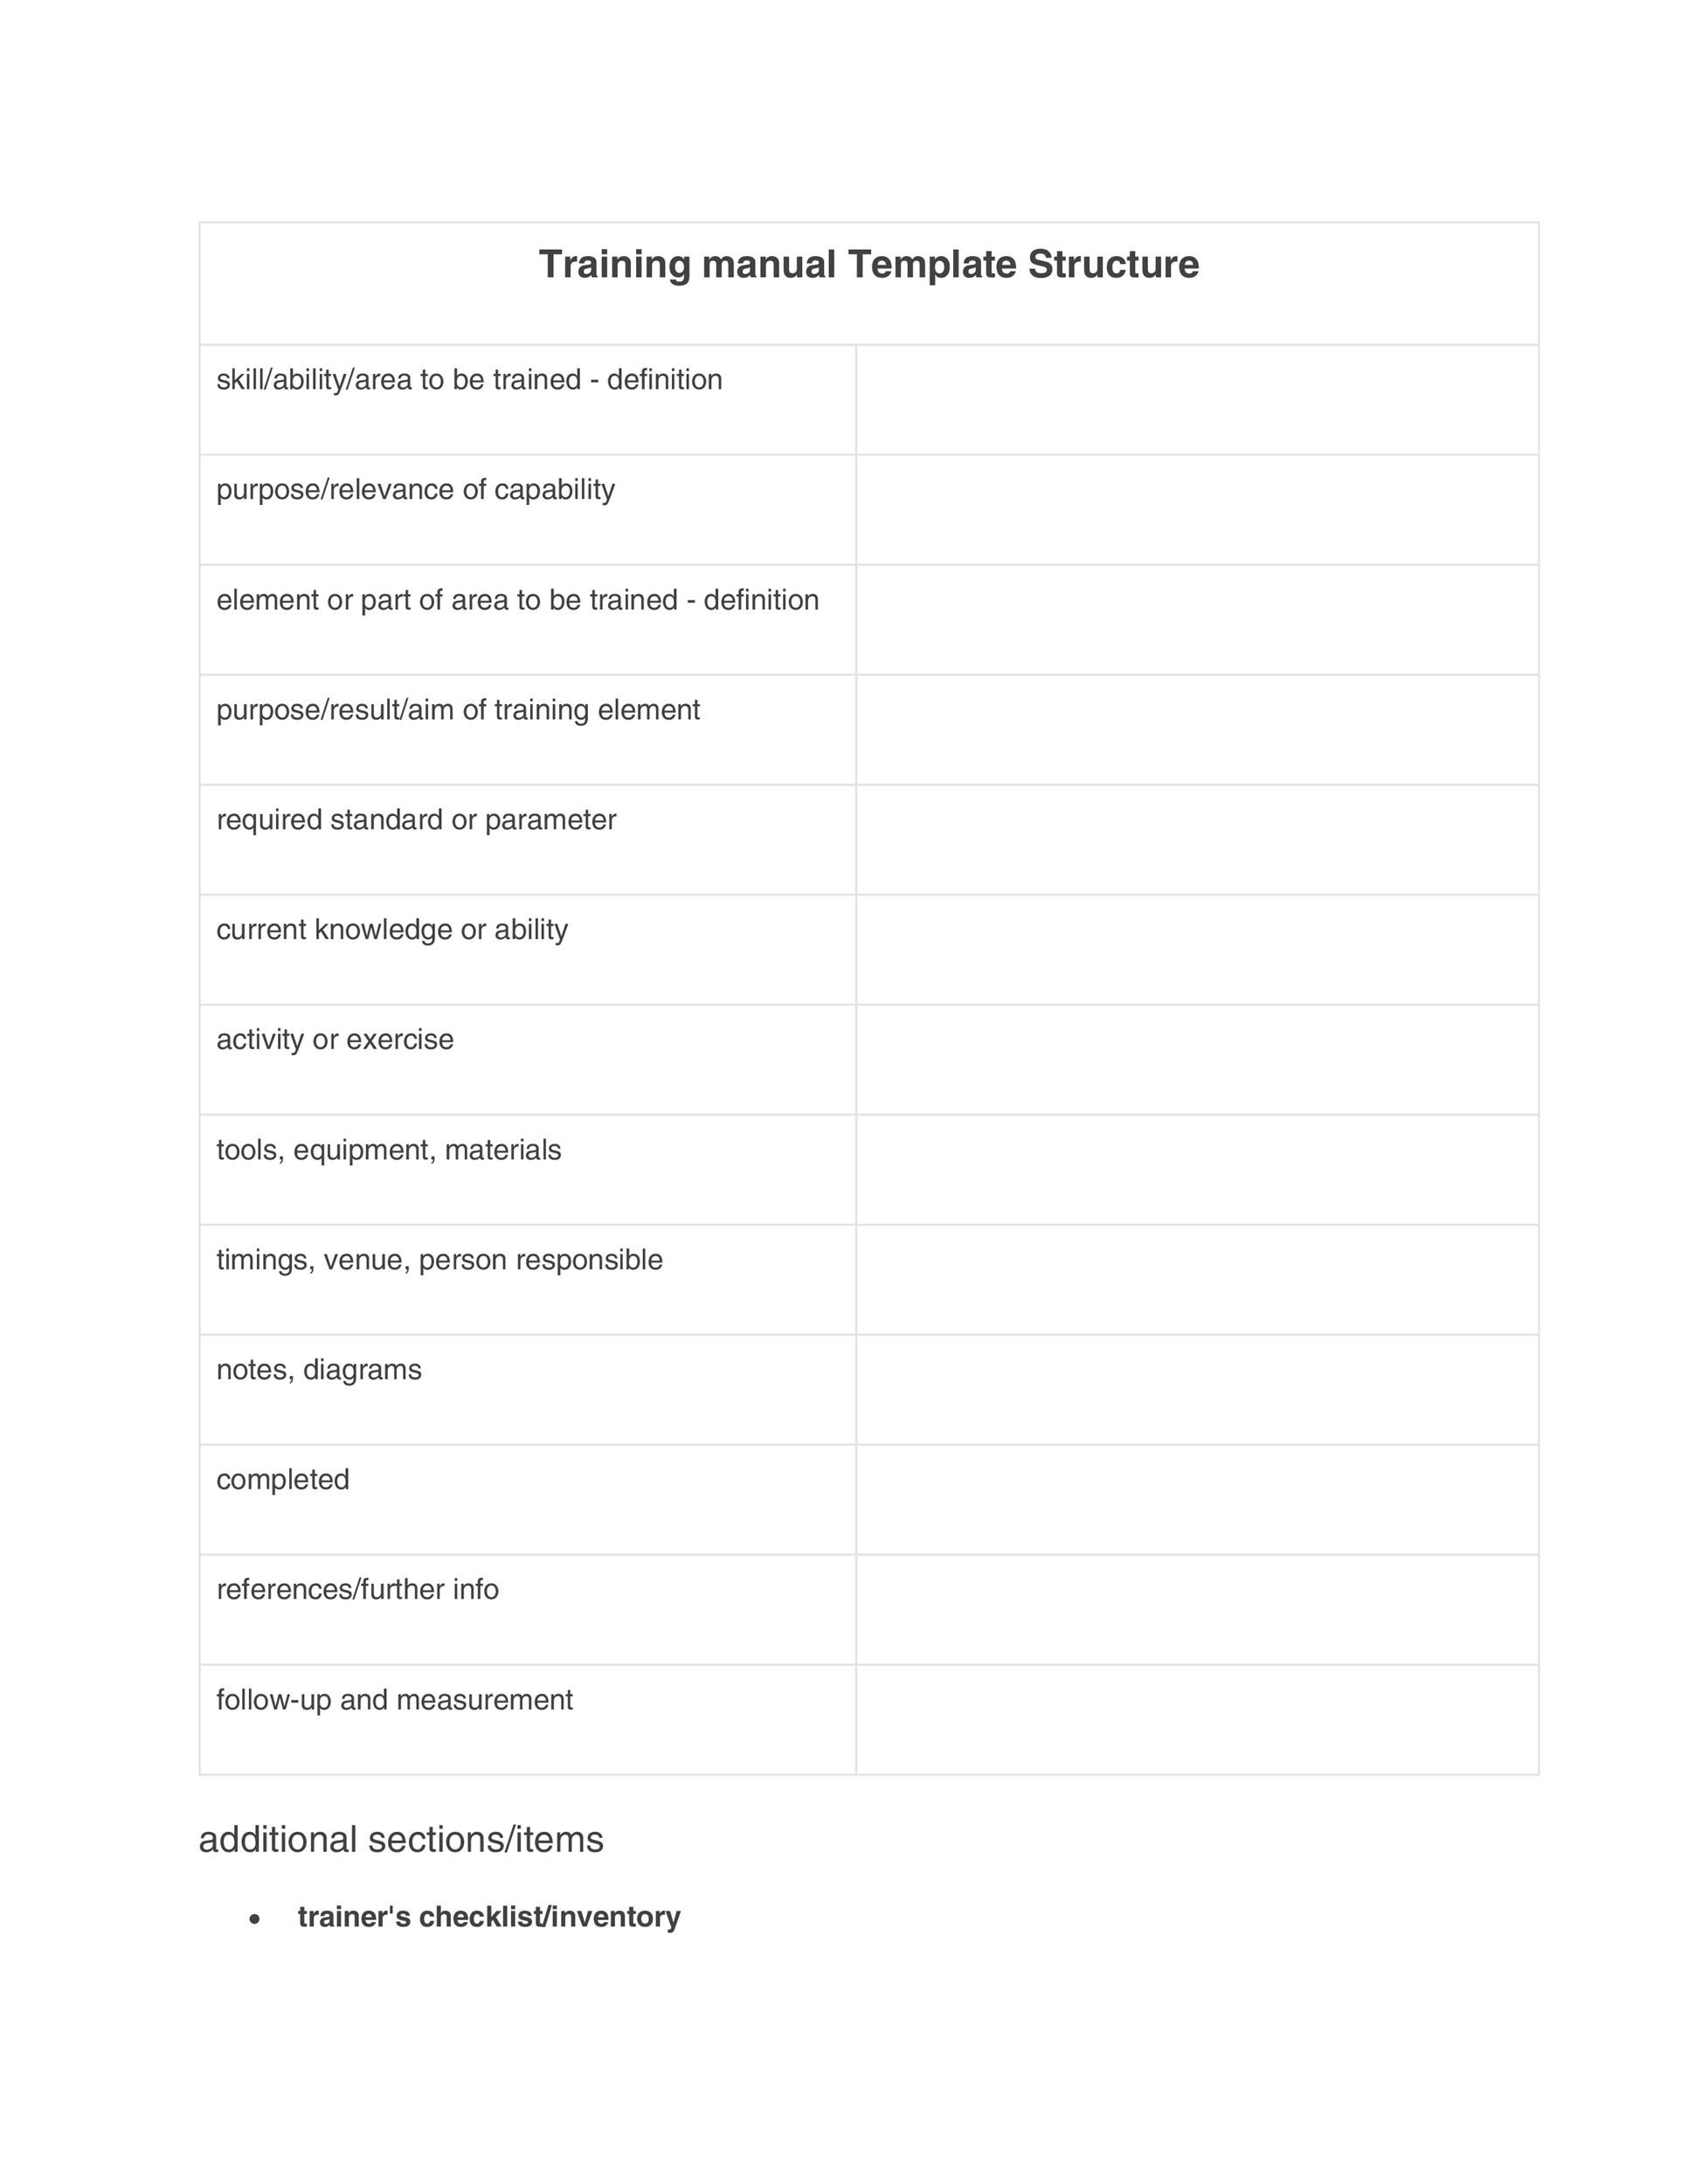 Training Manual 40 Free Templates Examples in MS Word – Free Training Manual Template